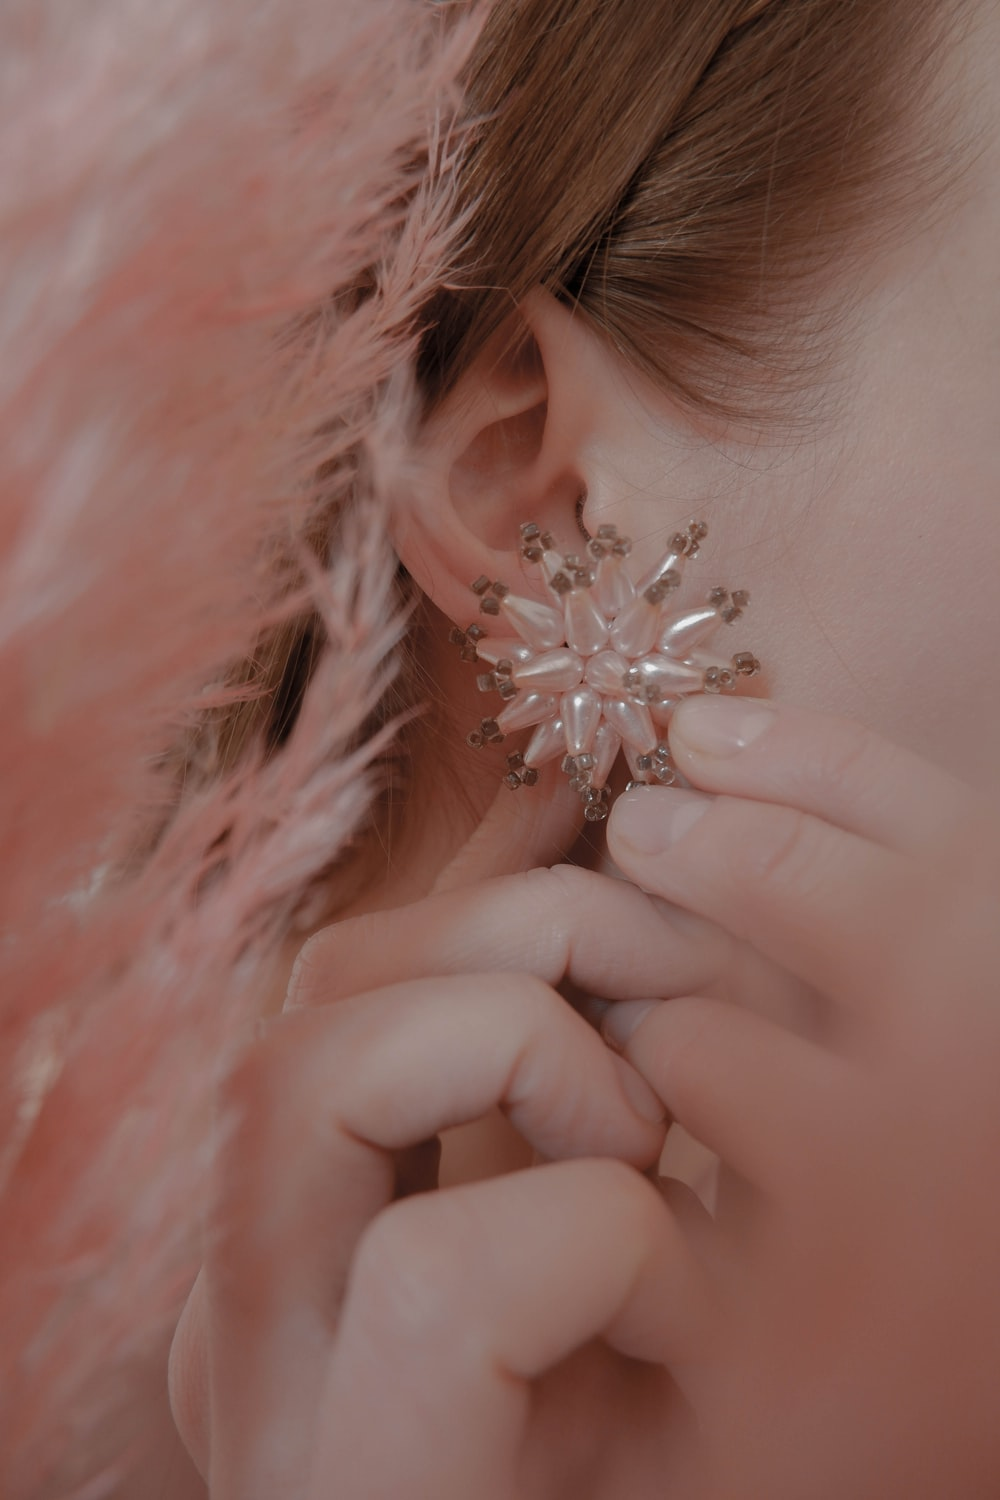 women's white earrings close-up photography